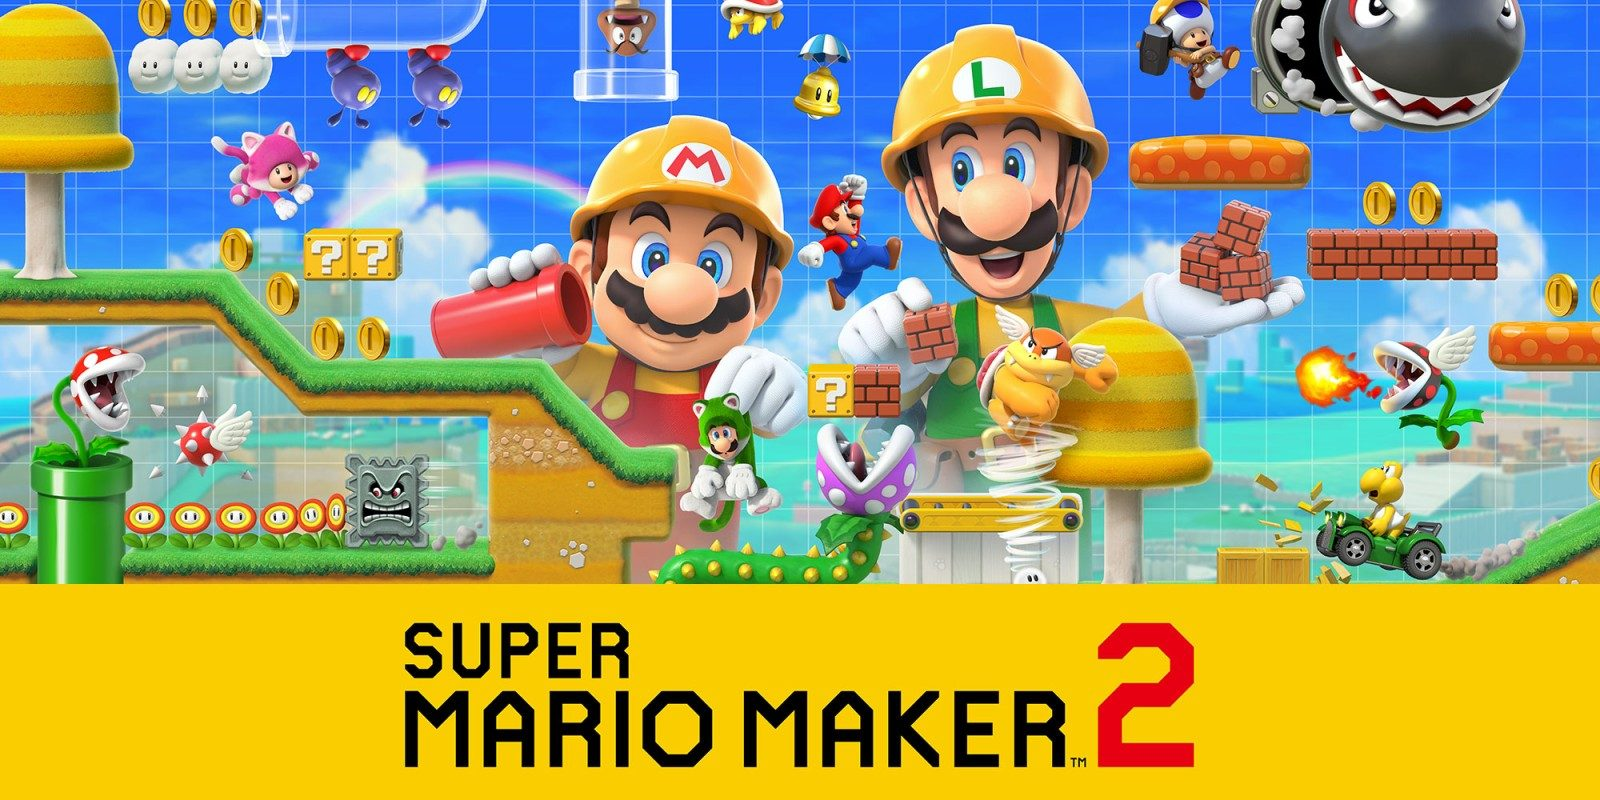 What new feature in Mario maker 2 would you add, it could be